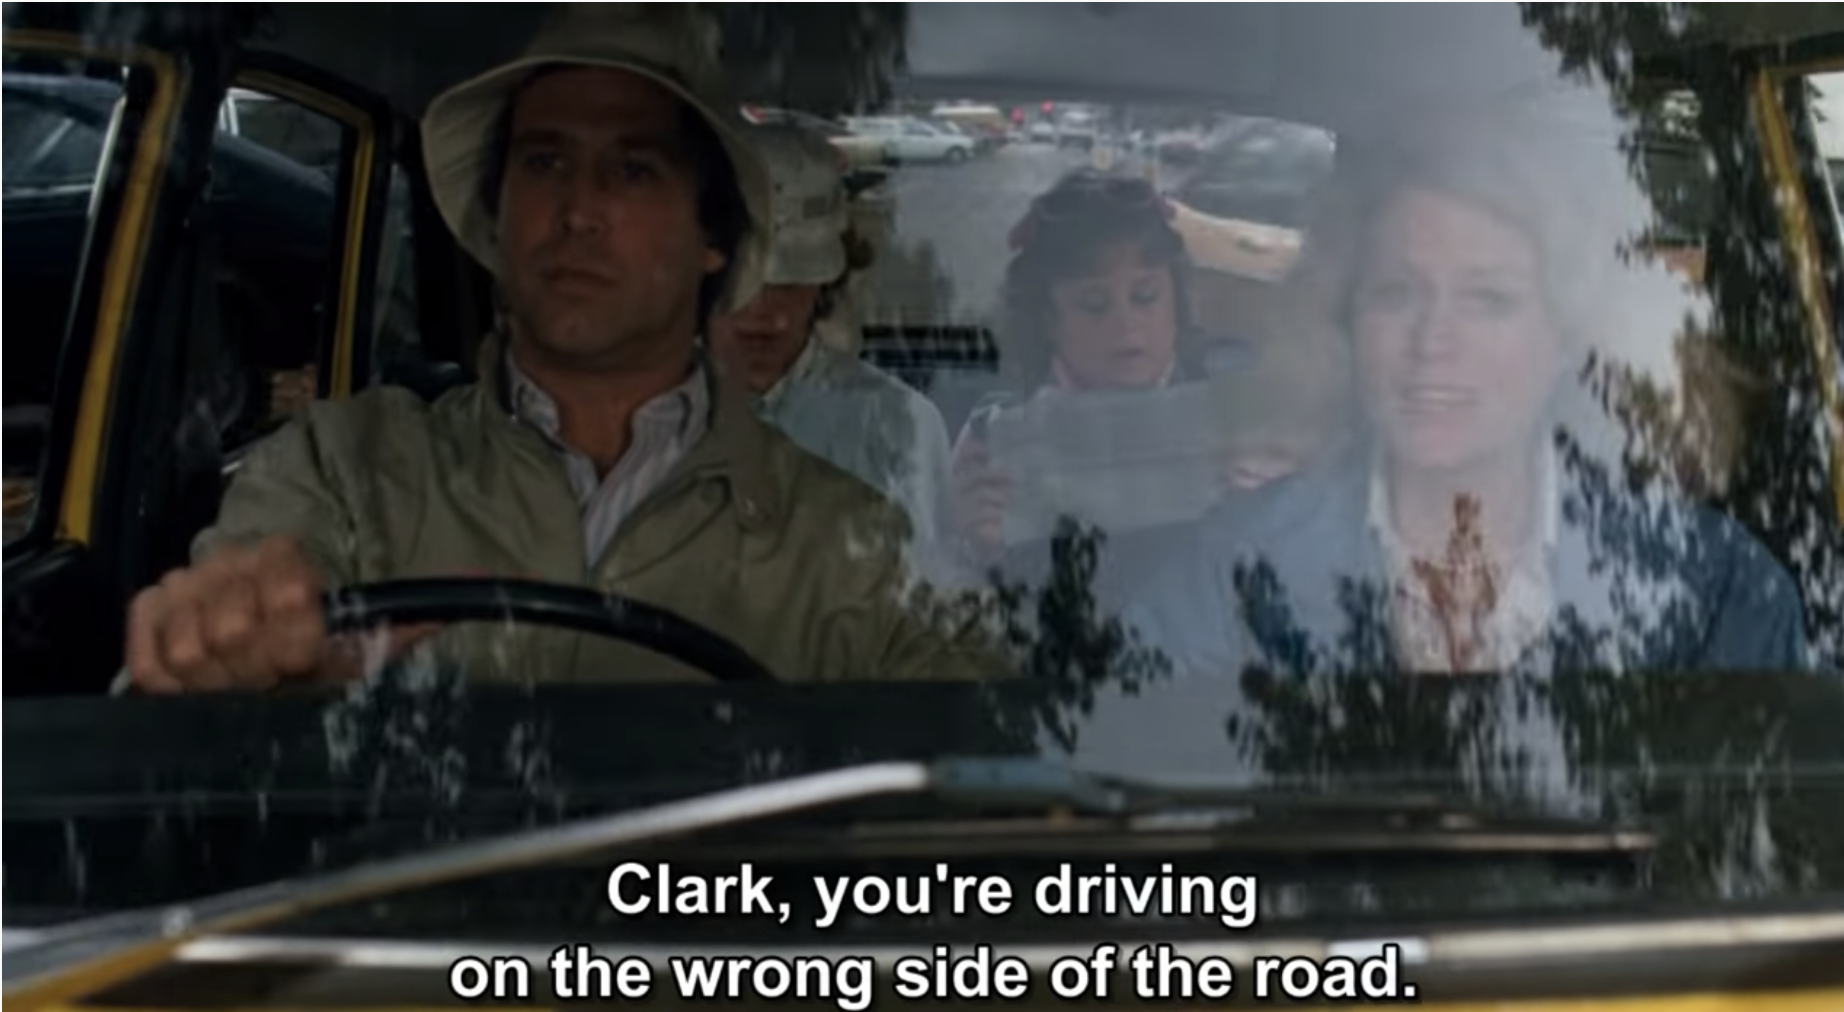 A scene from European Vacation where Clark Griswold drives on the wrong side of the road in England